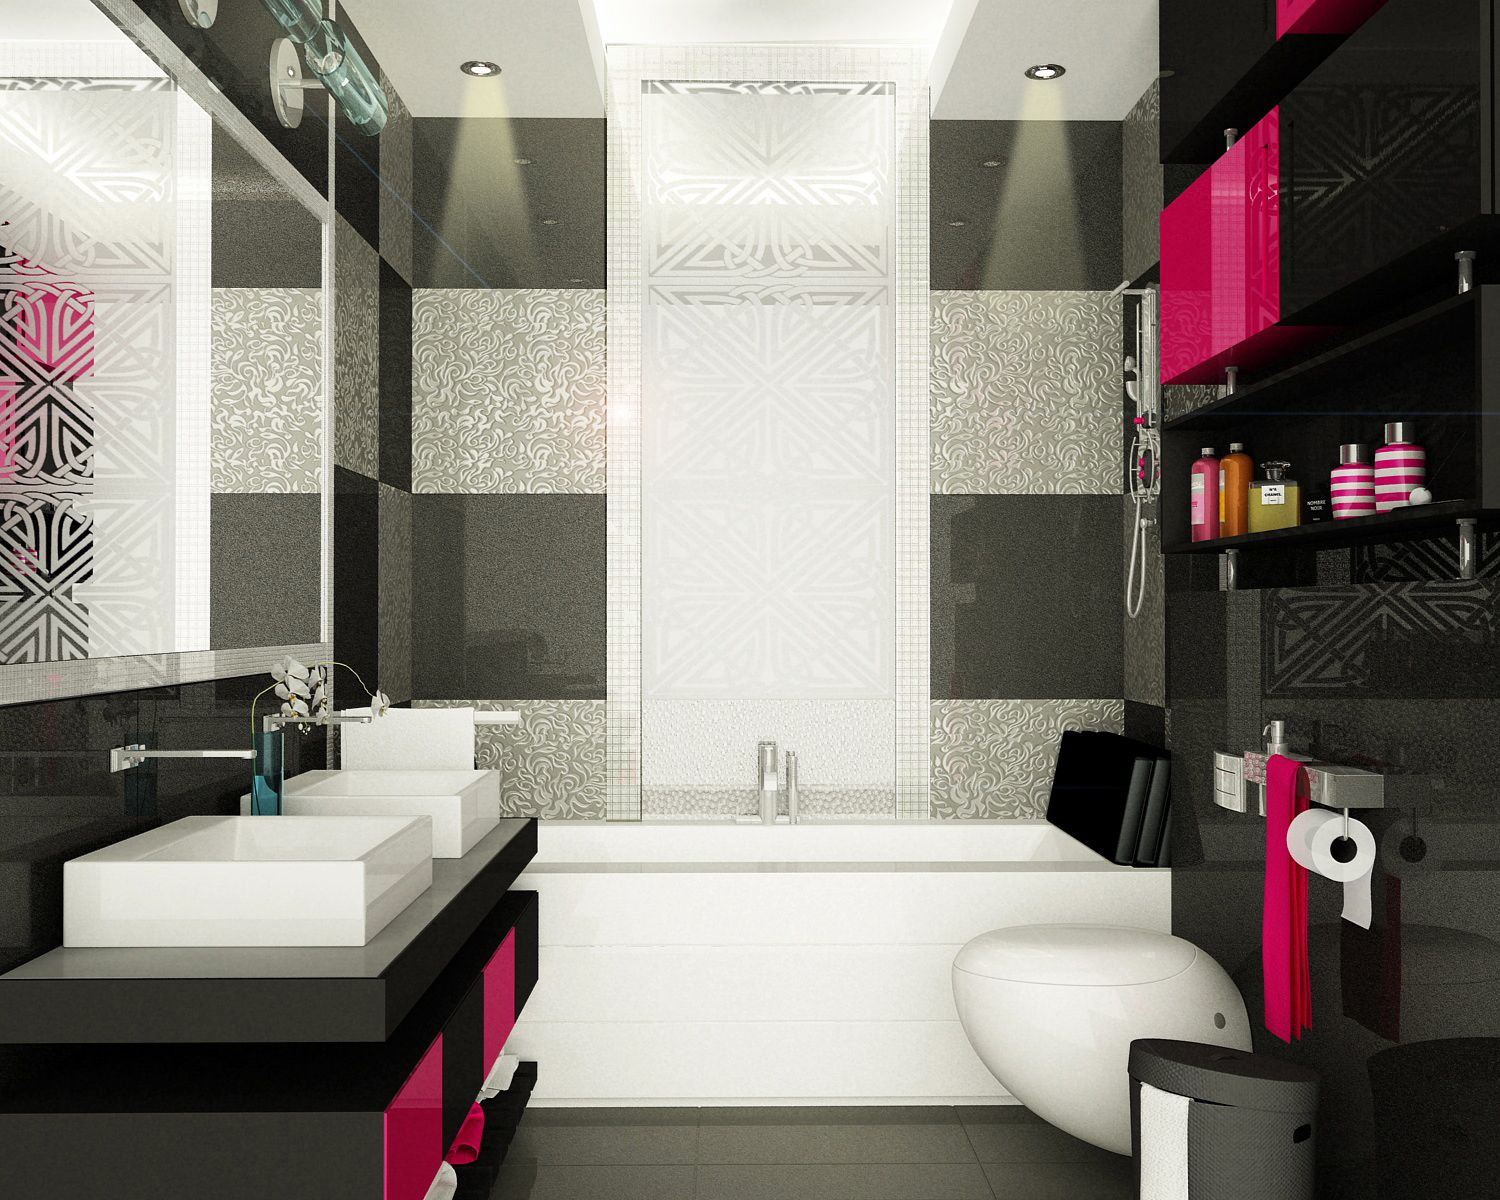 Hot pink & black bathroom design | Home deisgn/ dream bedroom ...